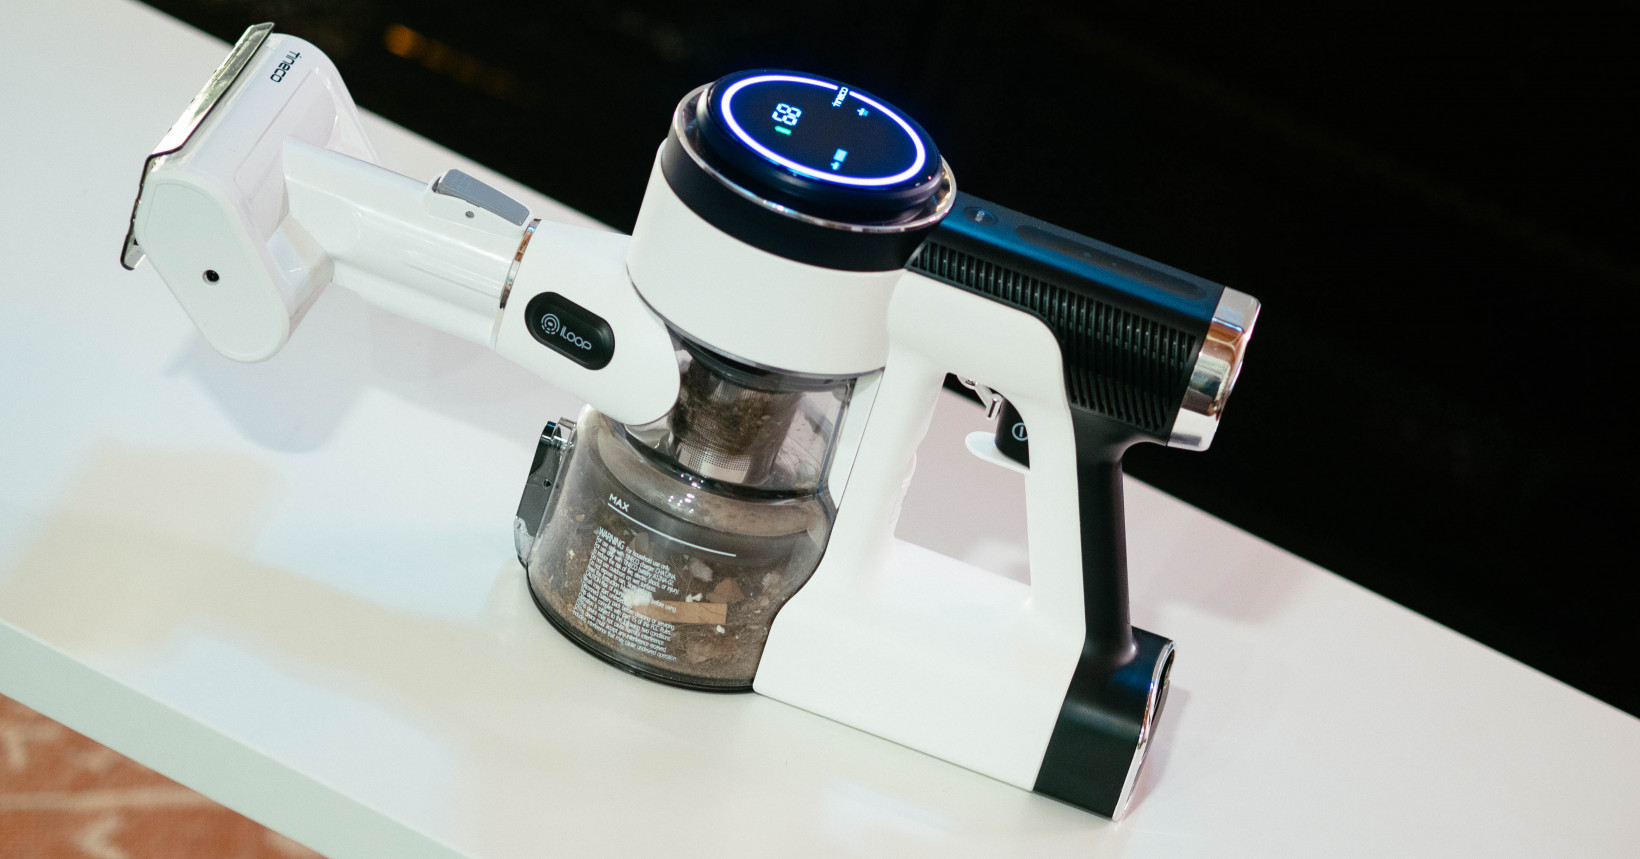 Tineco's new smart vacuum should make you reconsider that Dyson